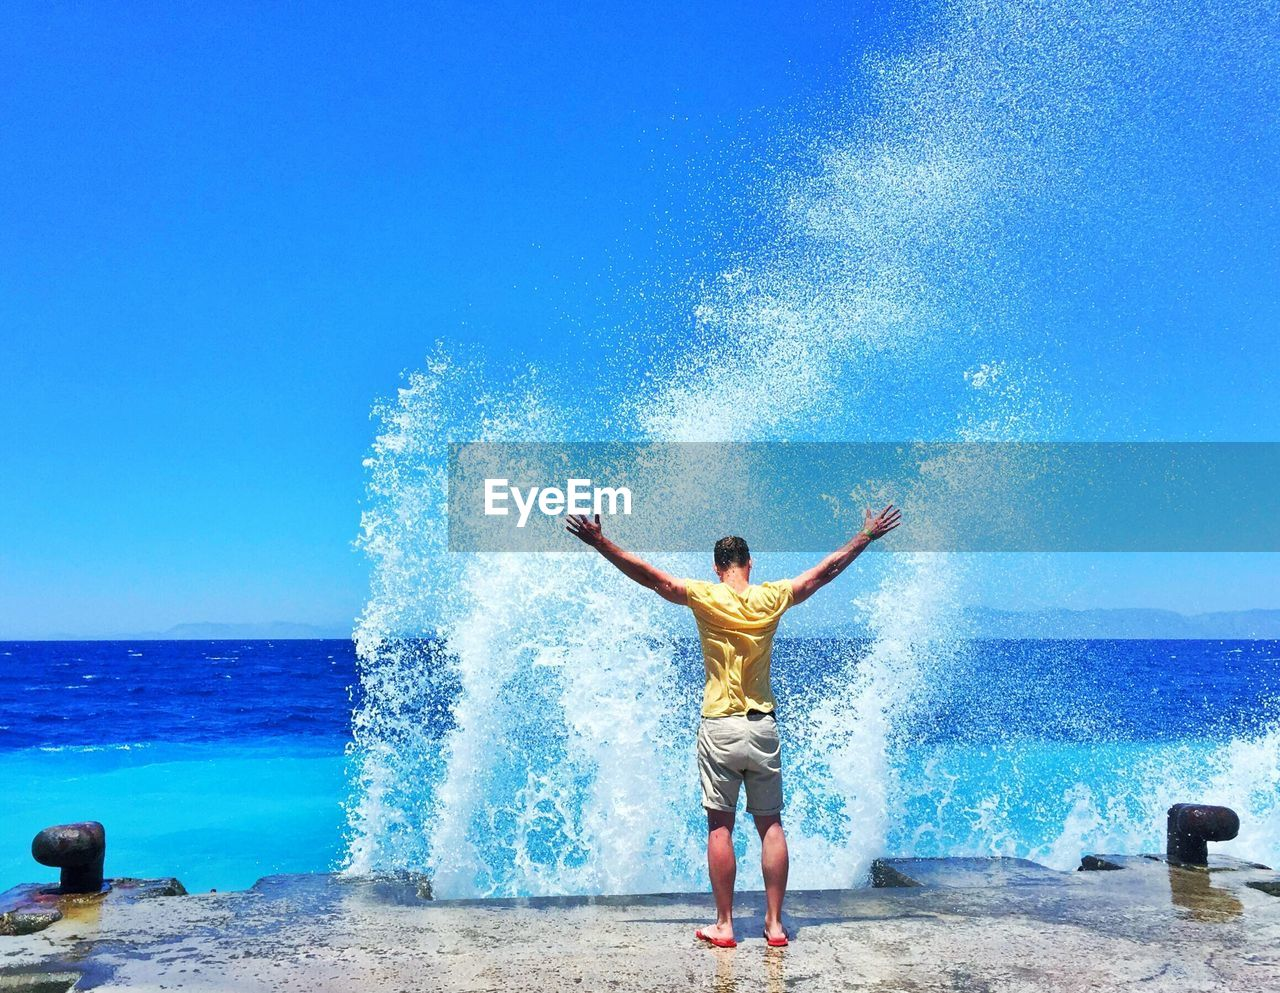 Rear view of man standing with waves splashing on shore in background against clear blue sky